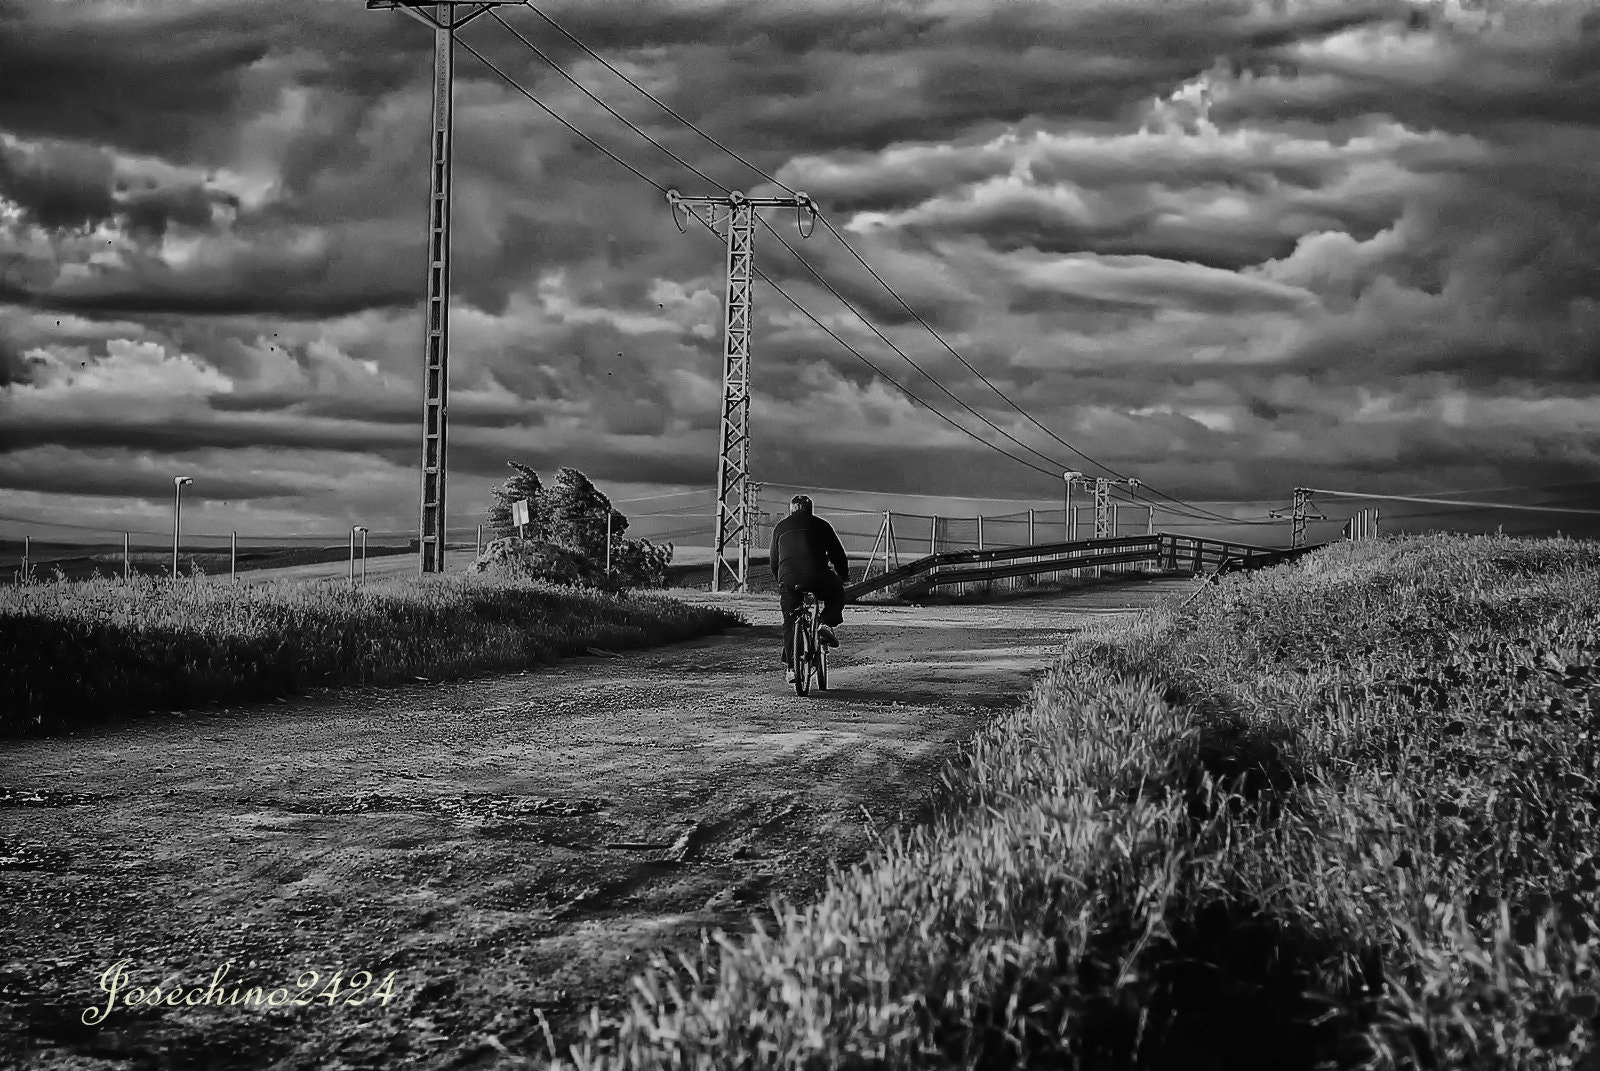 Photograph Untitled by Jose Maria Ramos Montero on 500px